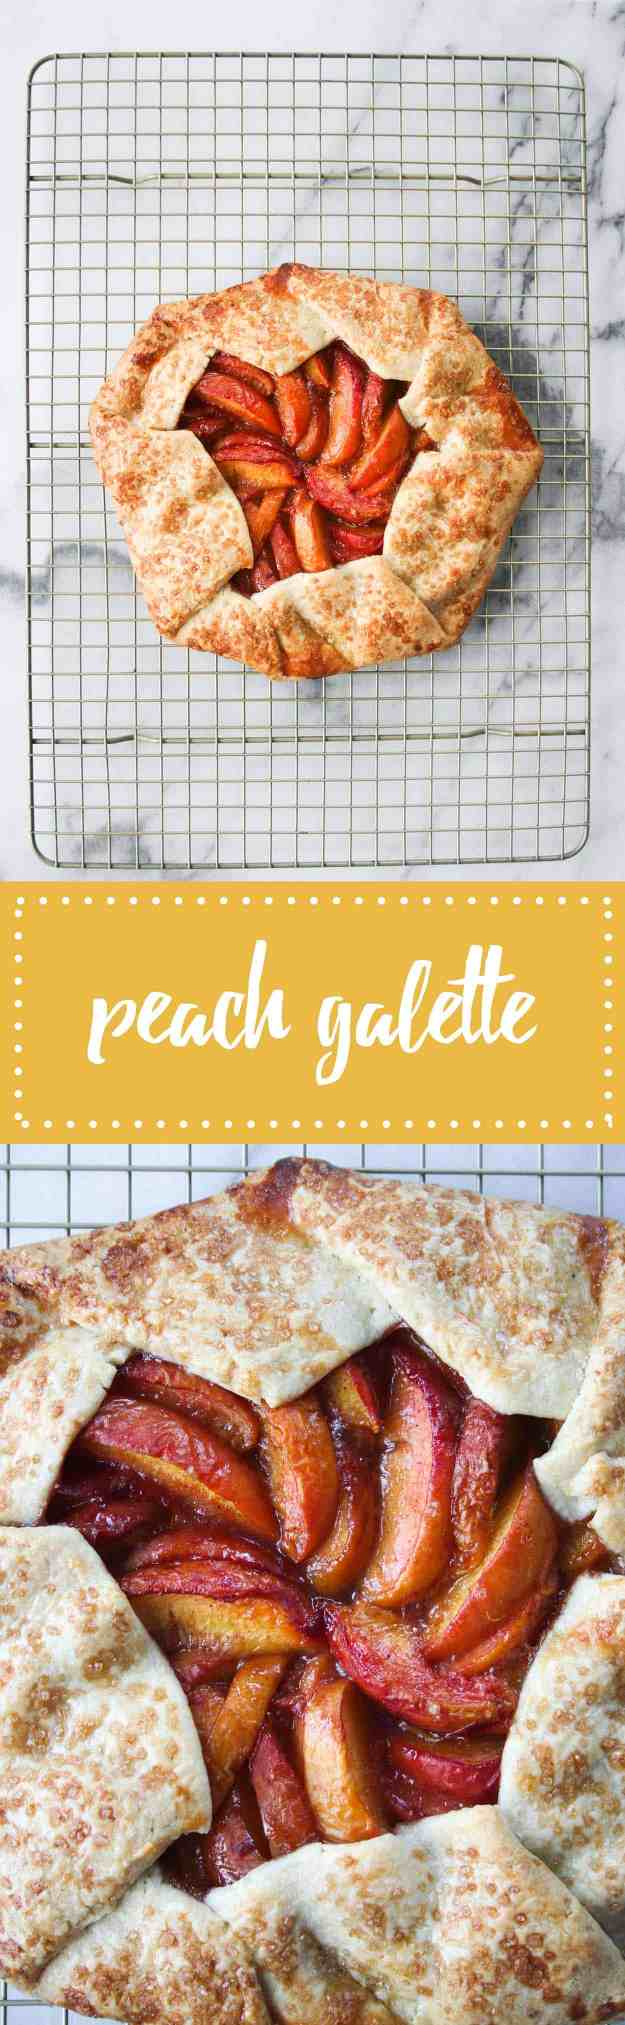 A simple and stunning summer dessert - peach galette! | hungrybynature.com